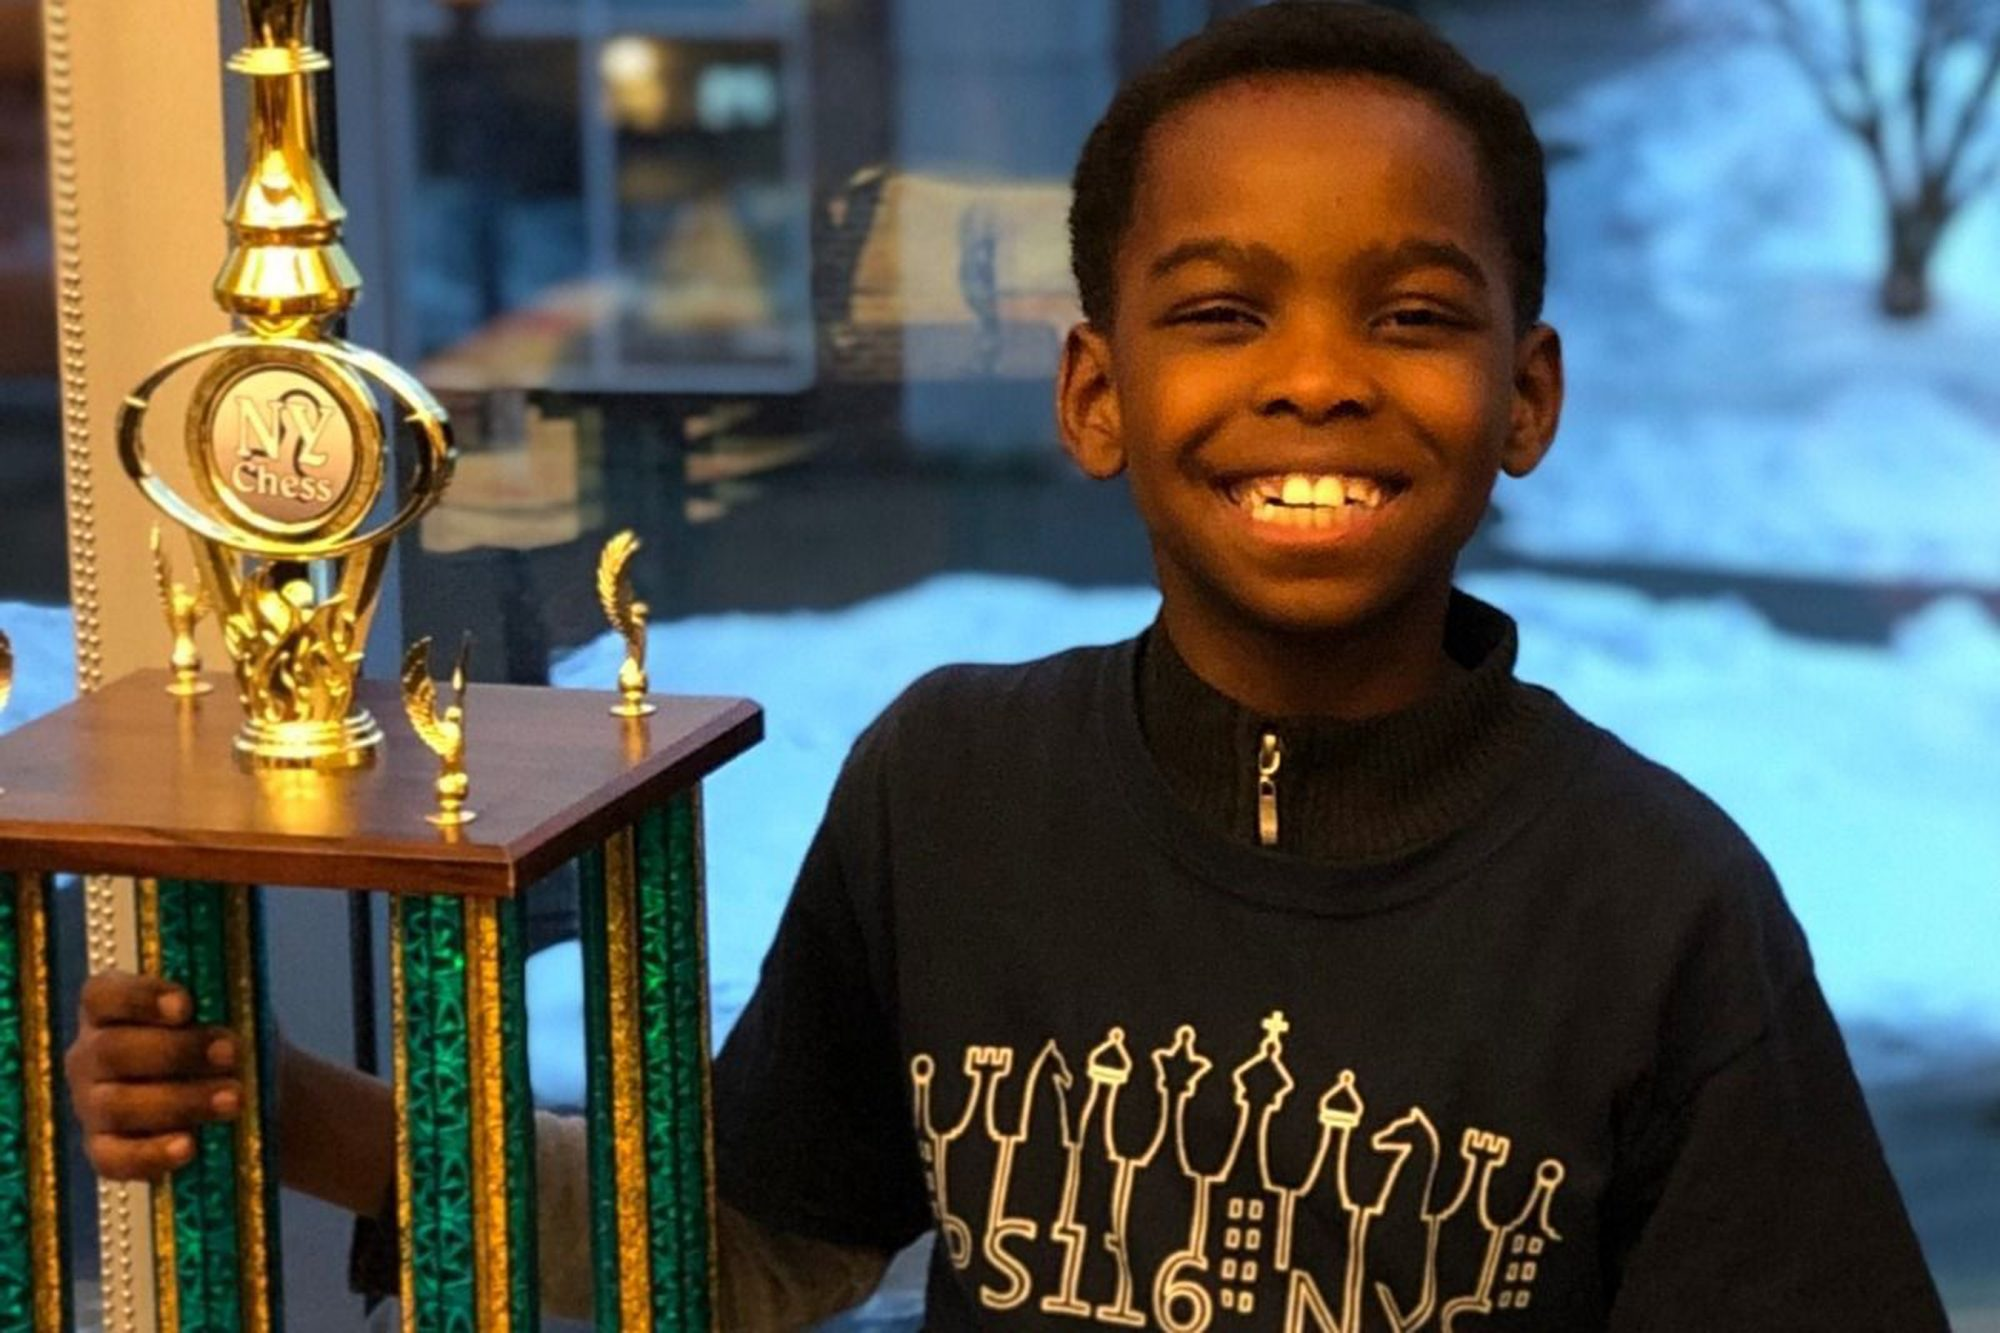 The Nigerian refugee, 8, won a chess championship; then a fund drive raised money for his family to get a home. (Even cooler? The family is using the majority of the money to set up a fund to help other African immigrants.)